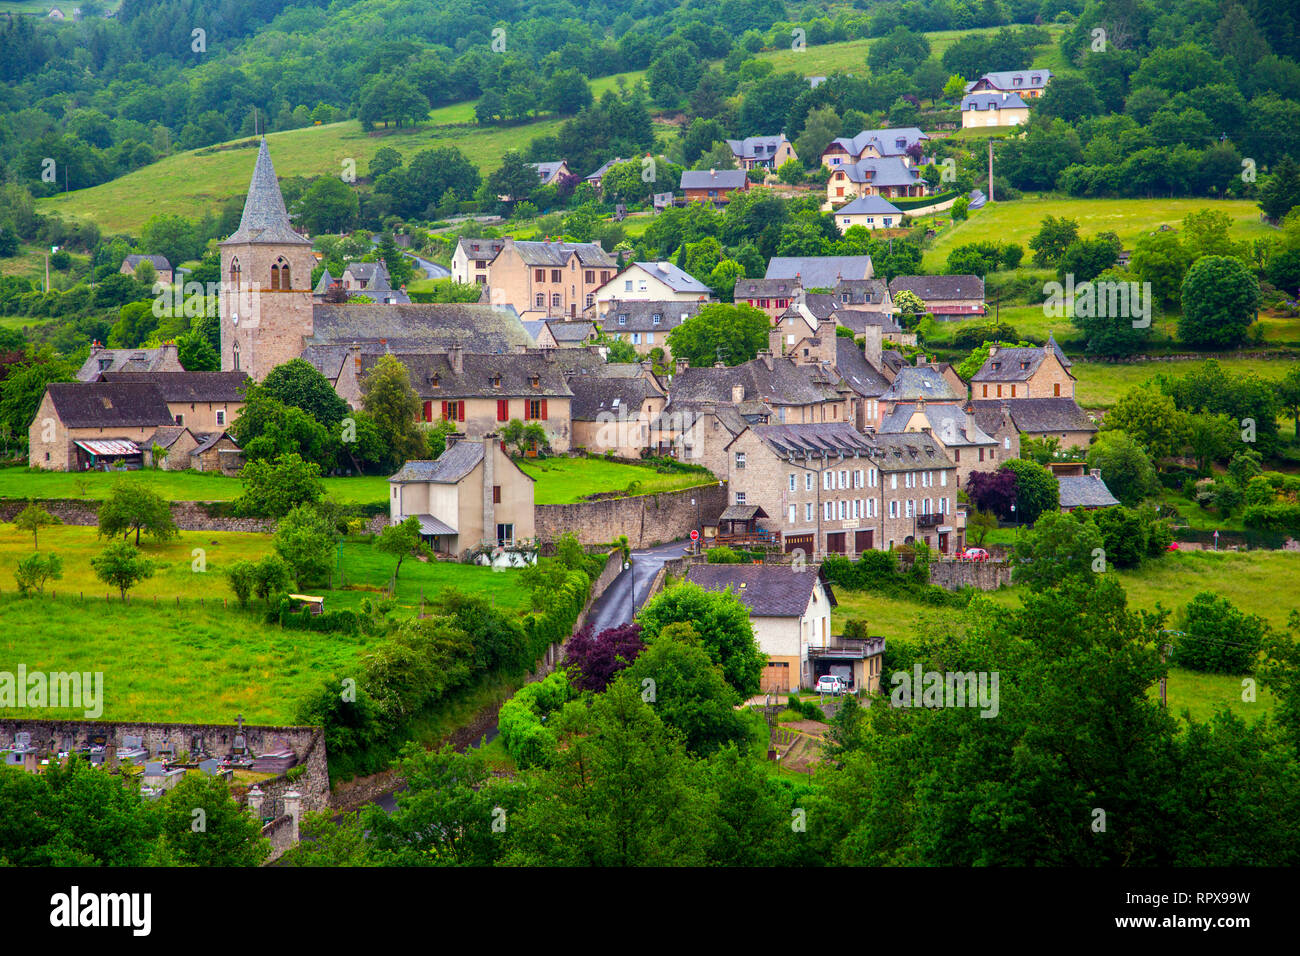 The village of Espeyrac in the Occitanie region of South-West France - Stock Image